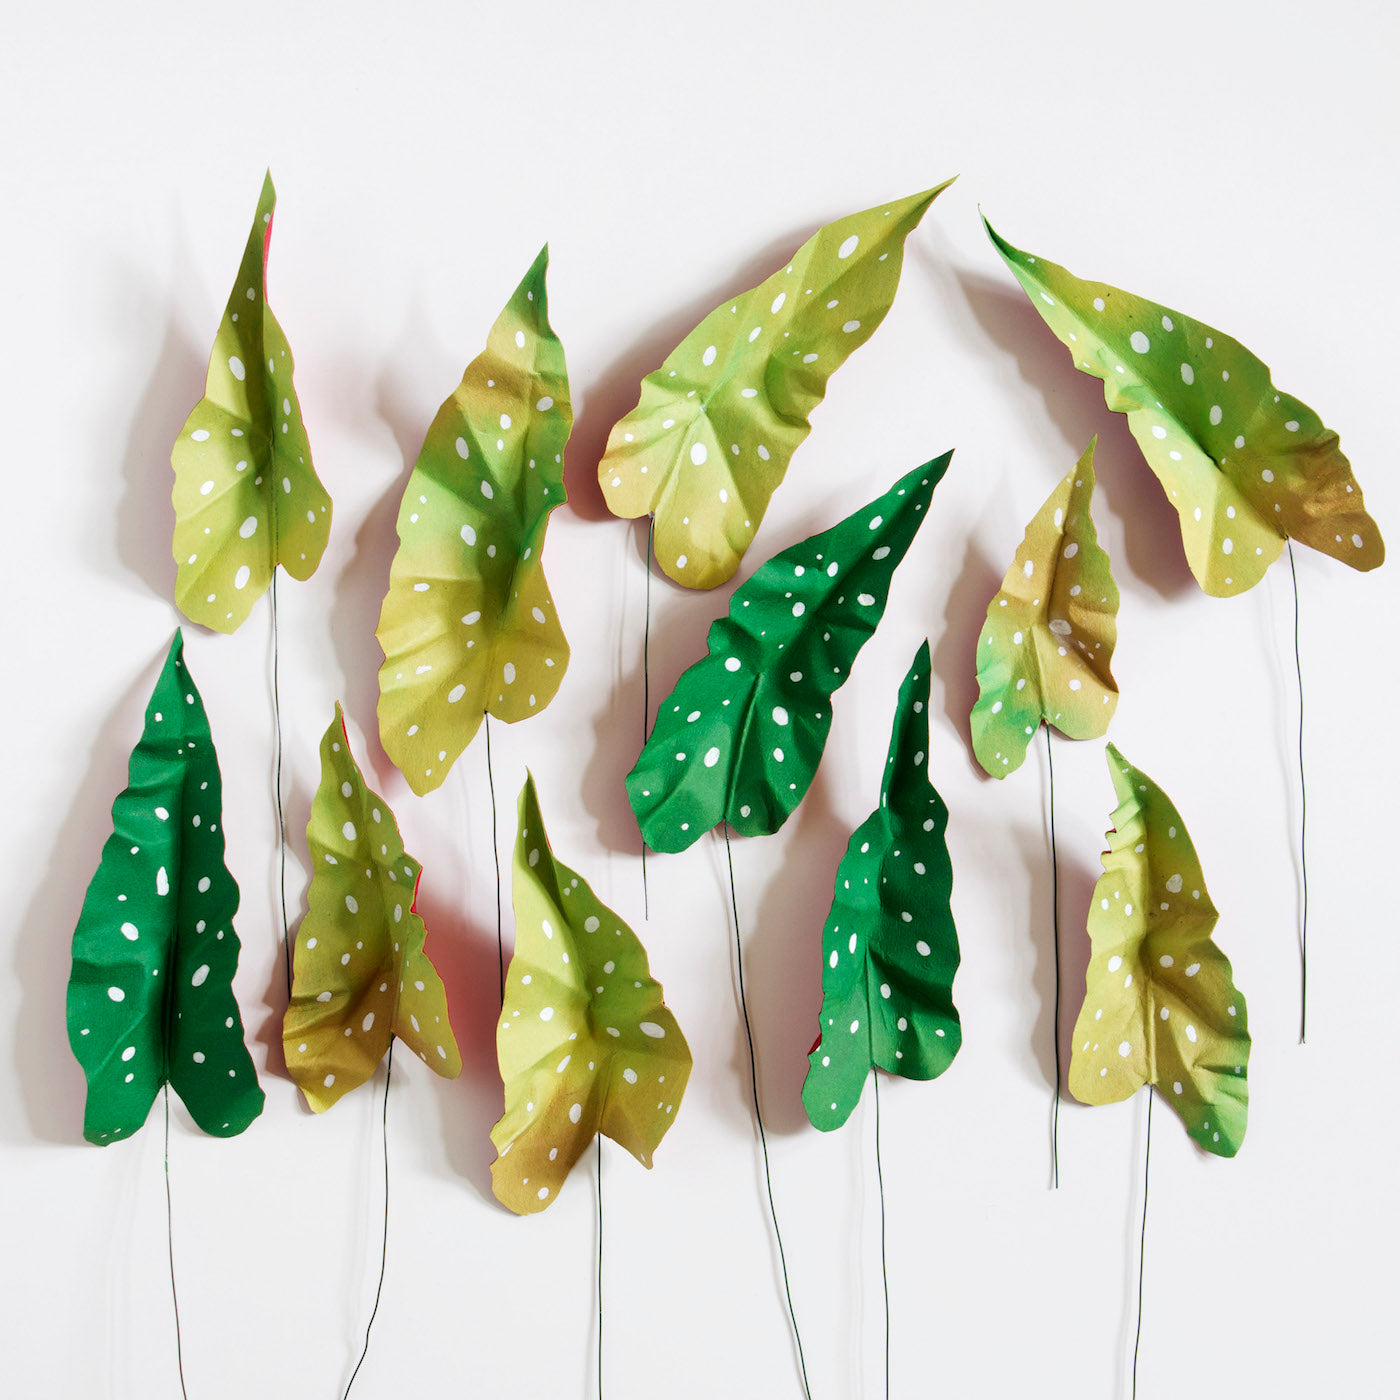 Crafted Plants by Corrie Beth Hogg